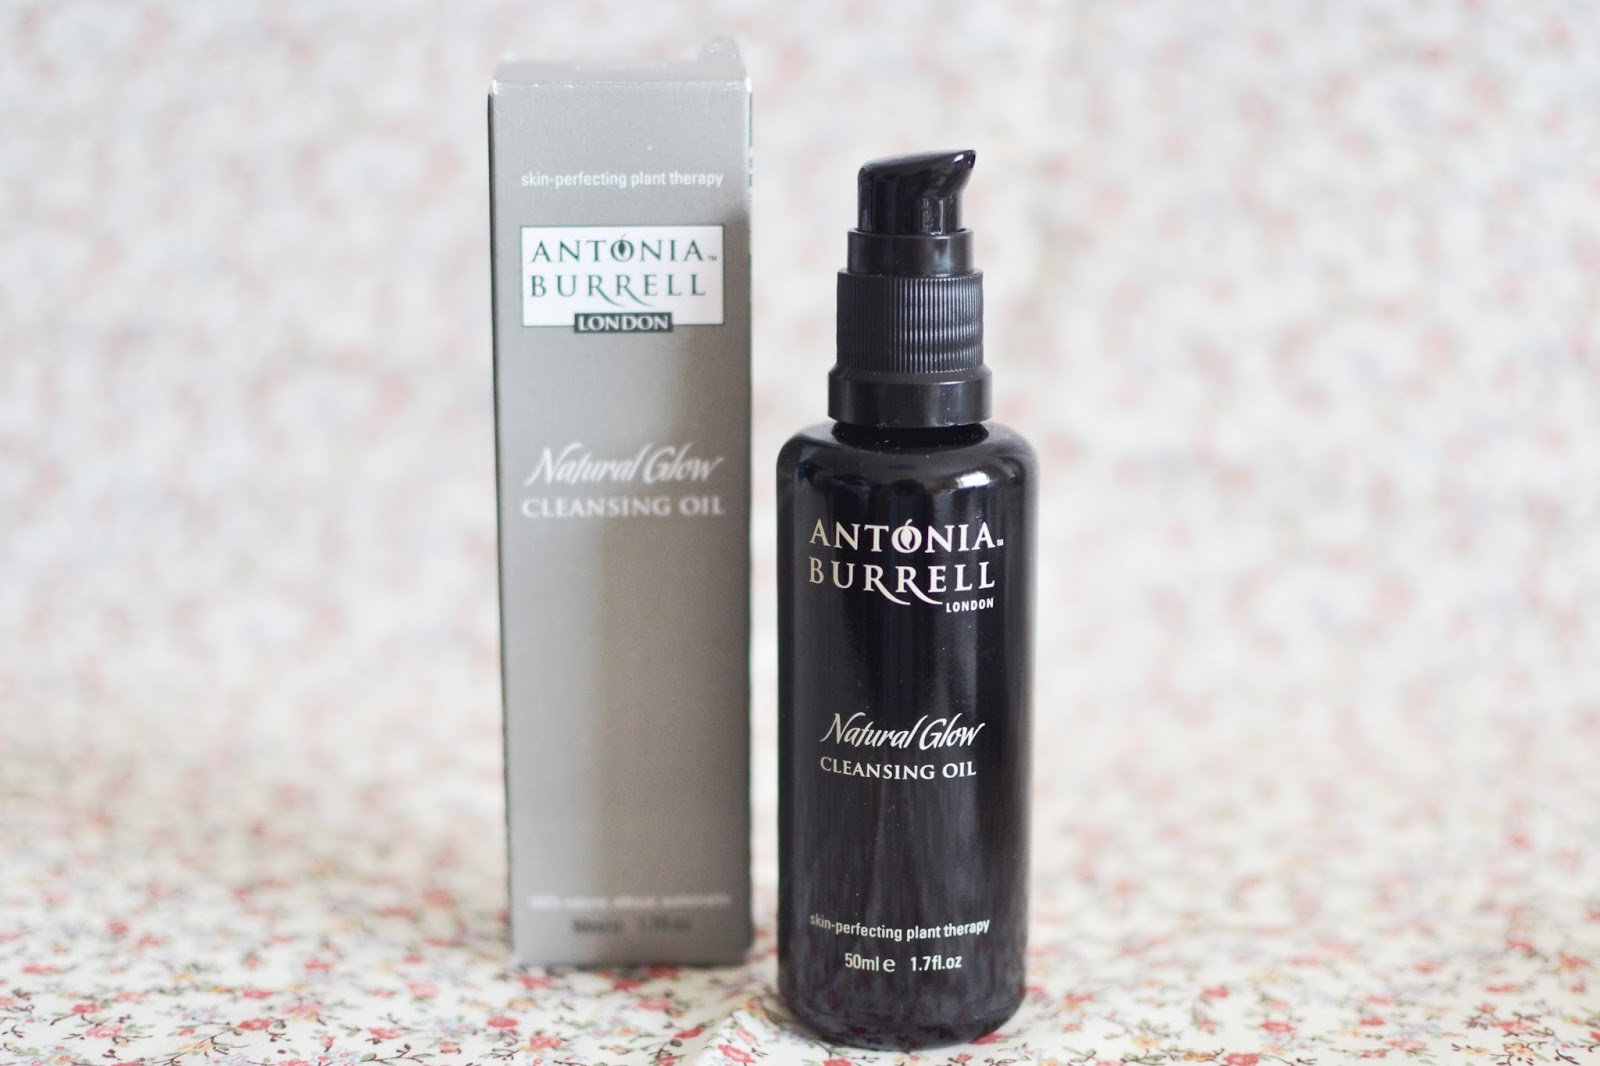 cleansing oil, double cleansing, natural glow cleansing oil, antonia burrell cleansing oil, natural cleanser